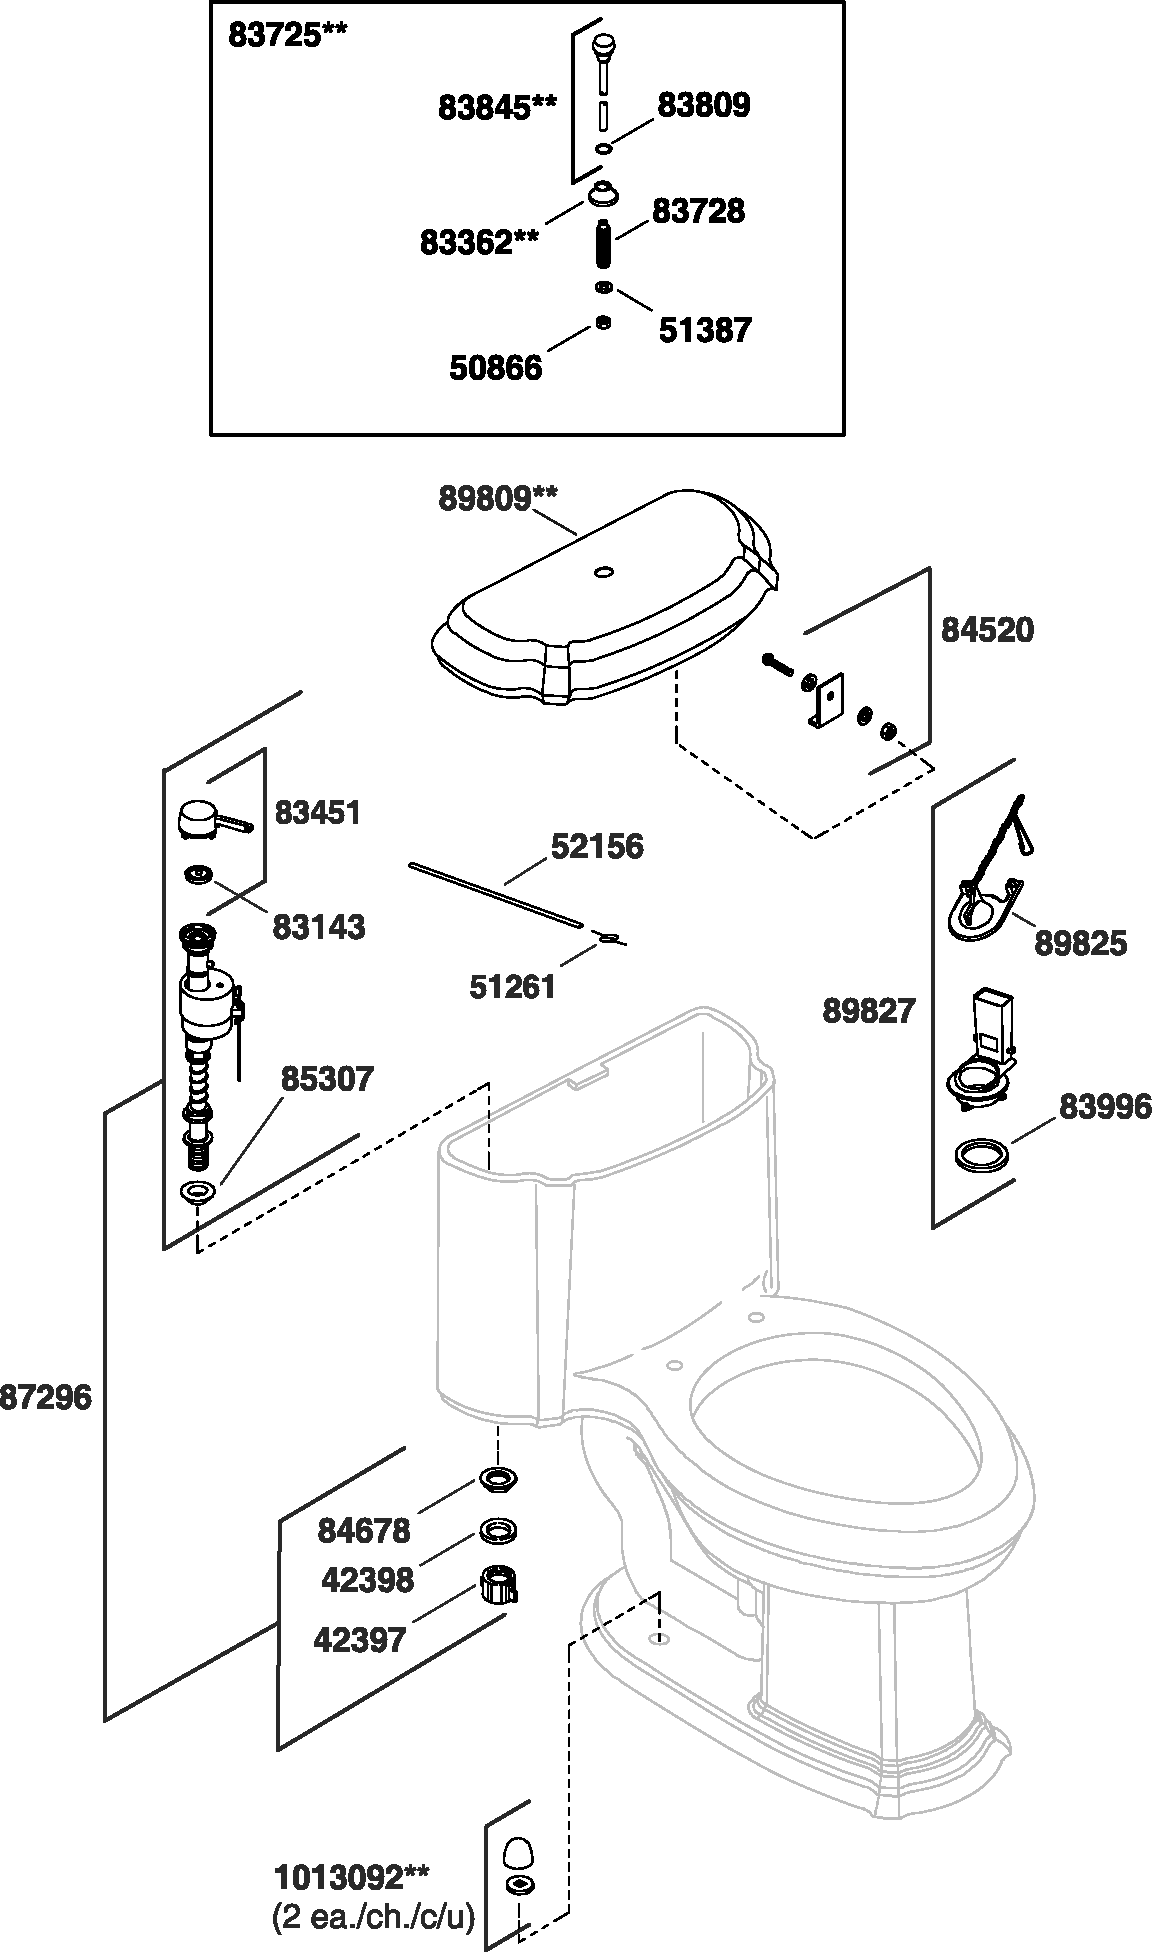 Kohler K-3357 Portrait Toilet Parts